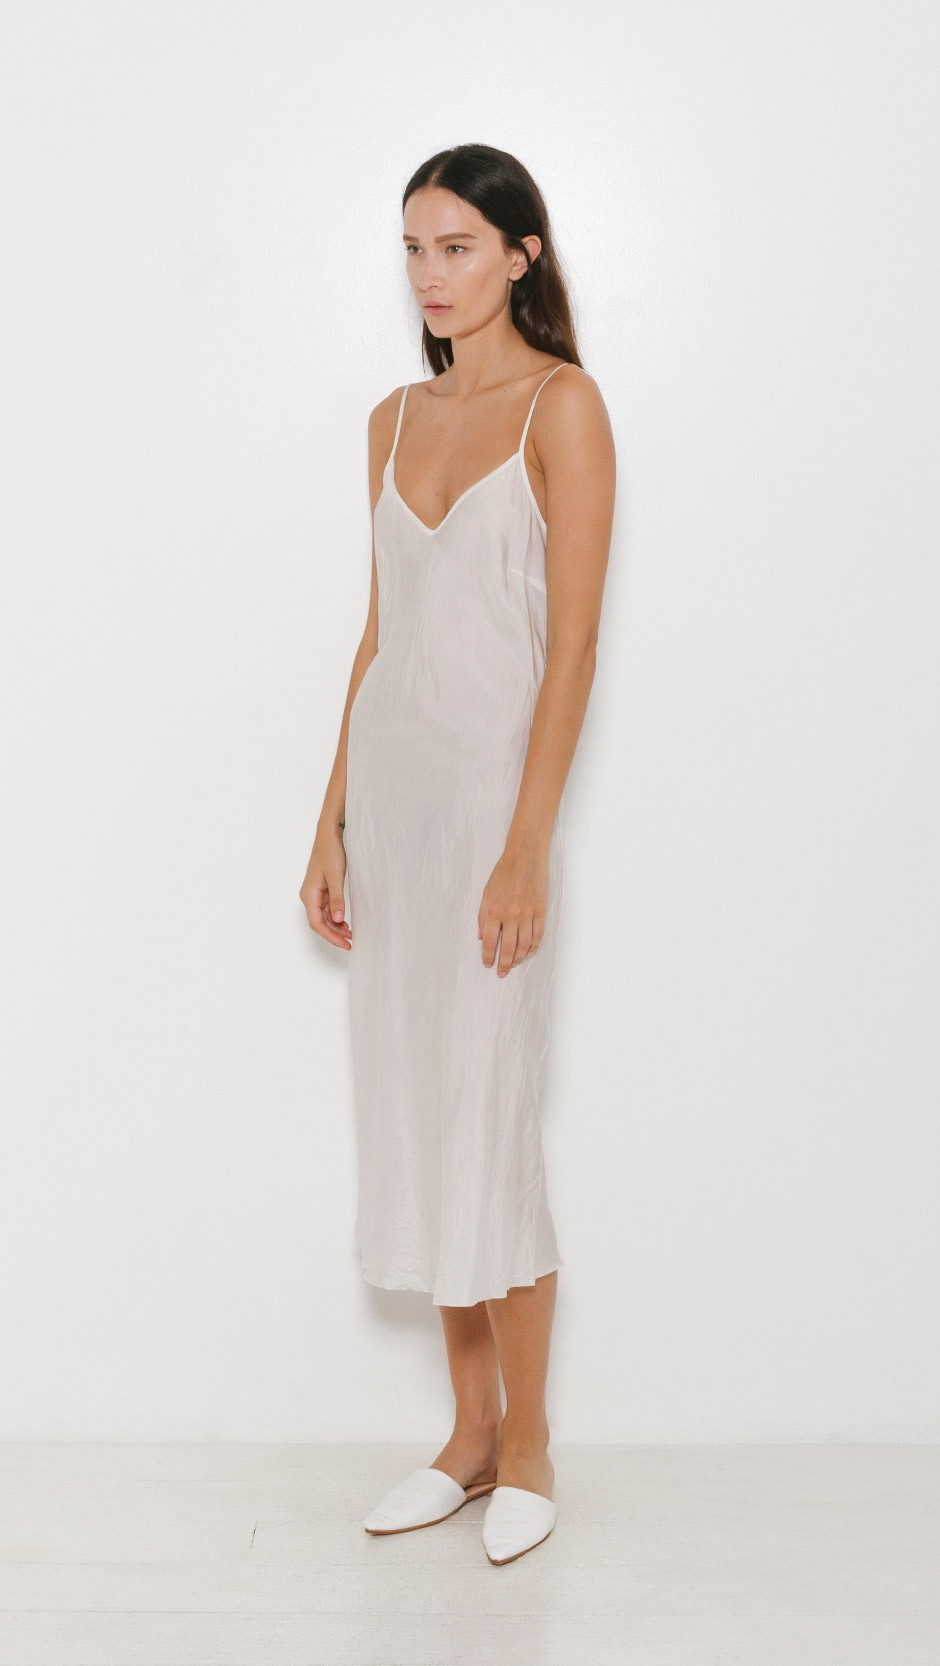 Organic by John Patrick Bias Long Slip, $189 from The Dreslyn, Photo Cred The Dreslyn